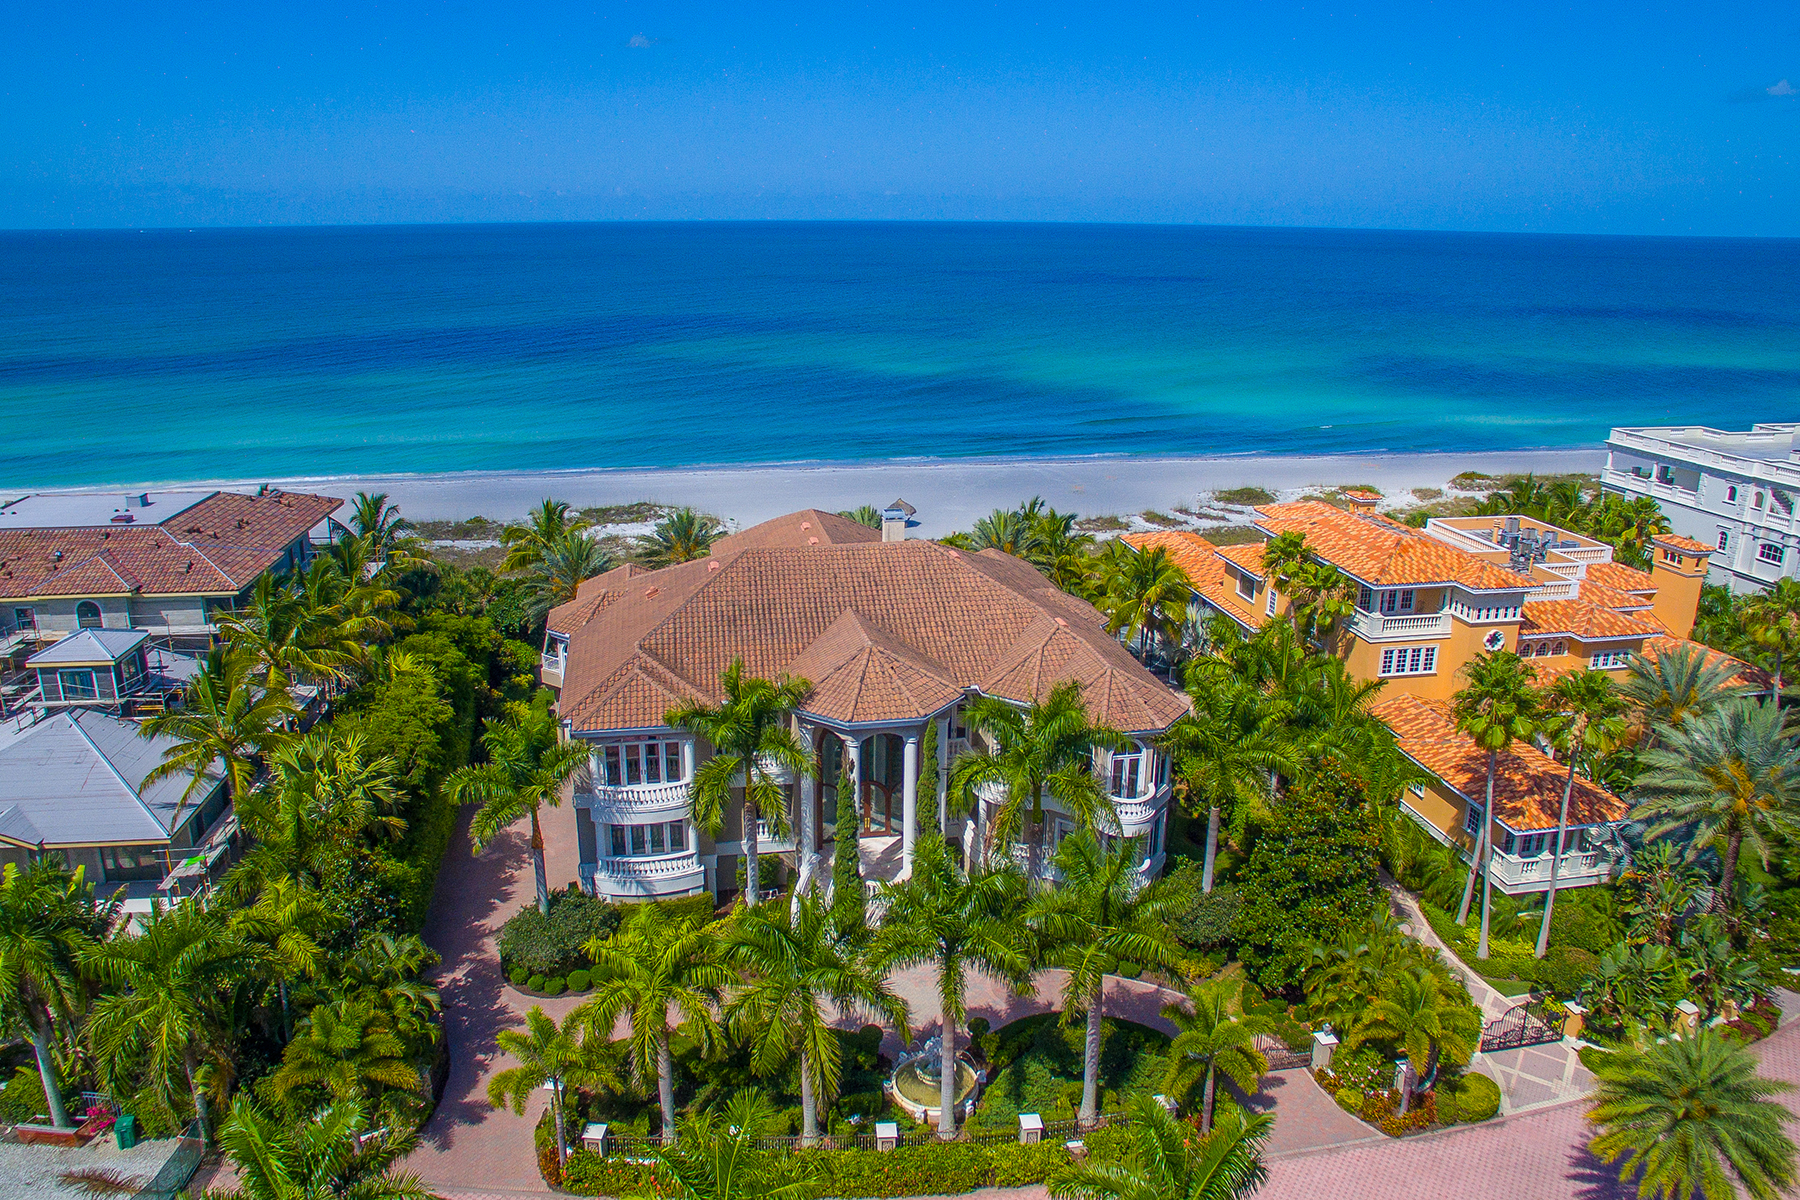 Single Family Home for Sale at LONGBOAT KEY 825 Longboat Club Rd Longboat Key, Florida, 34228 United States